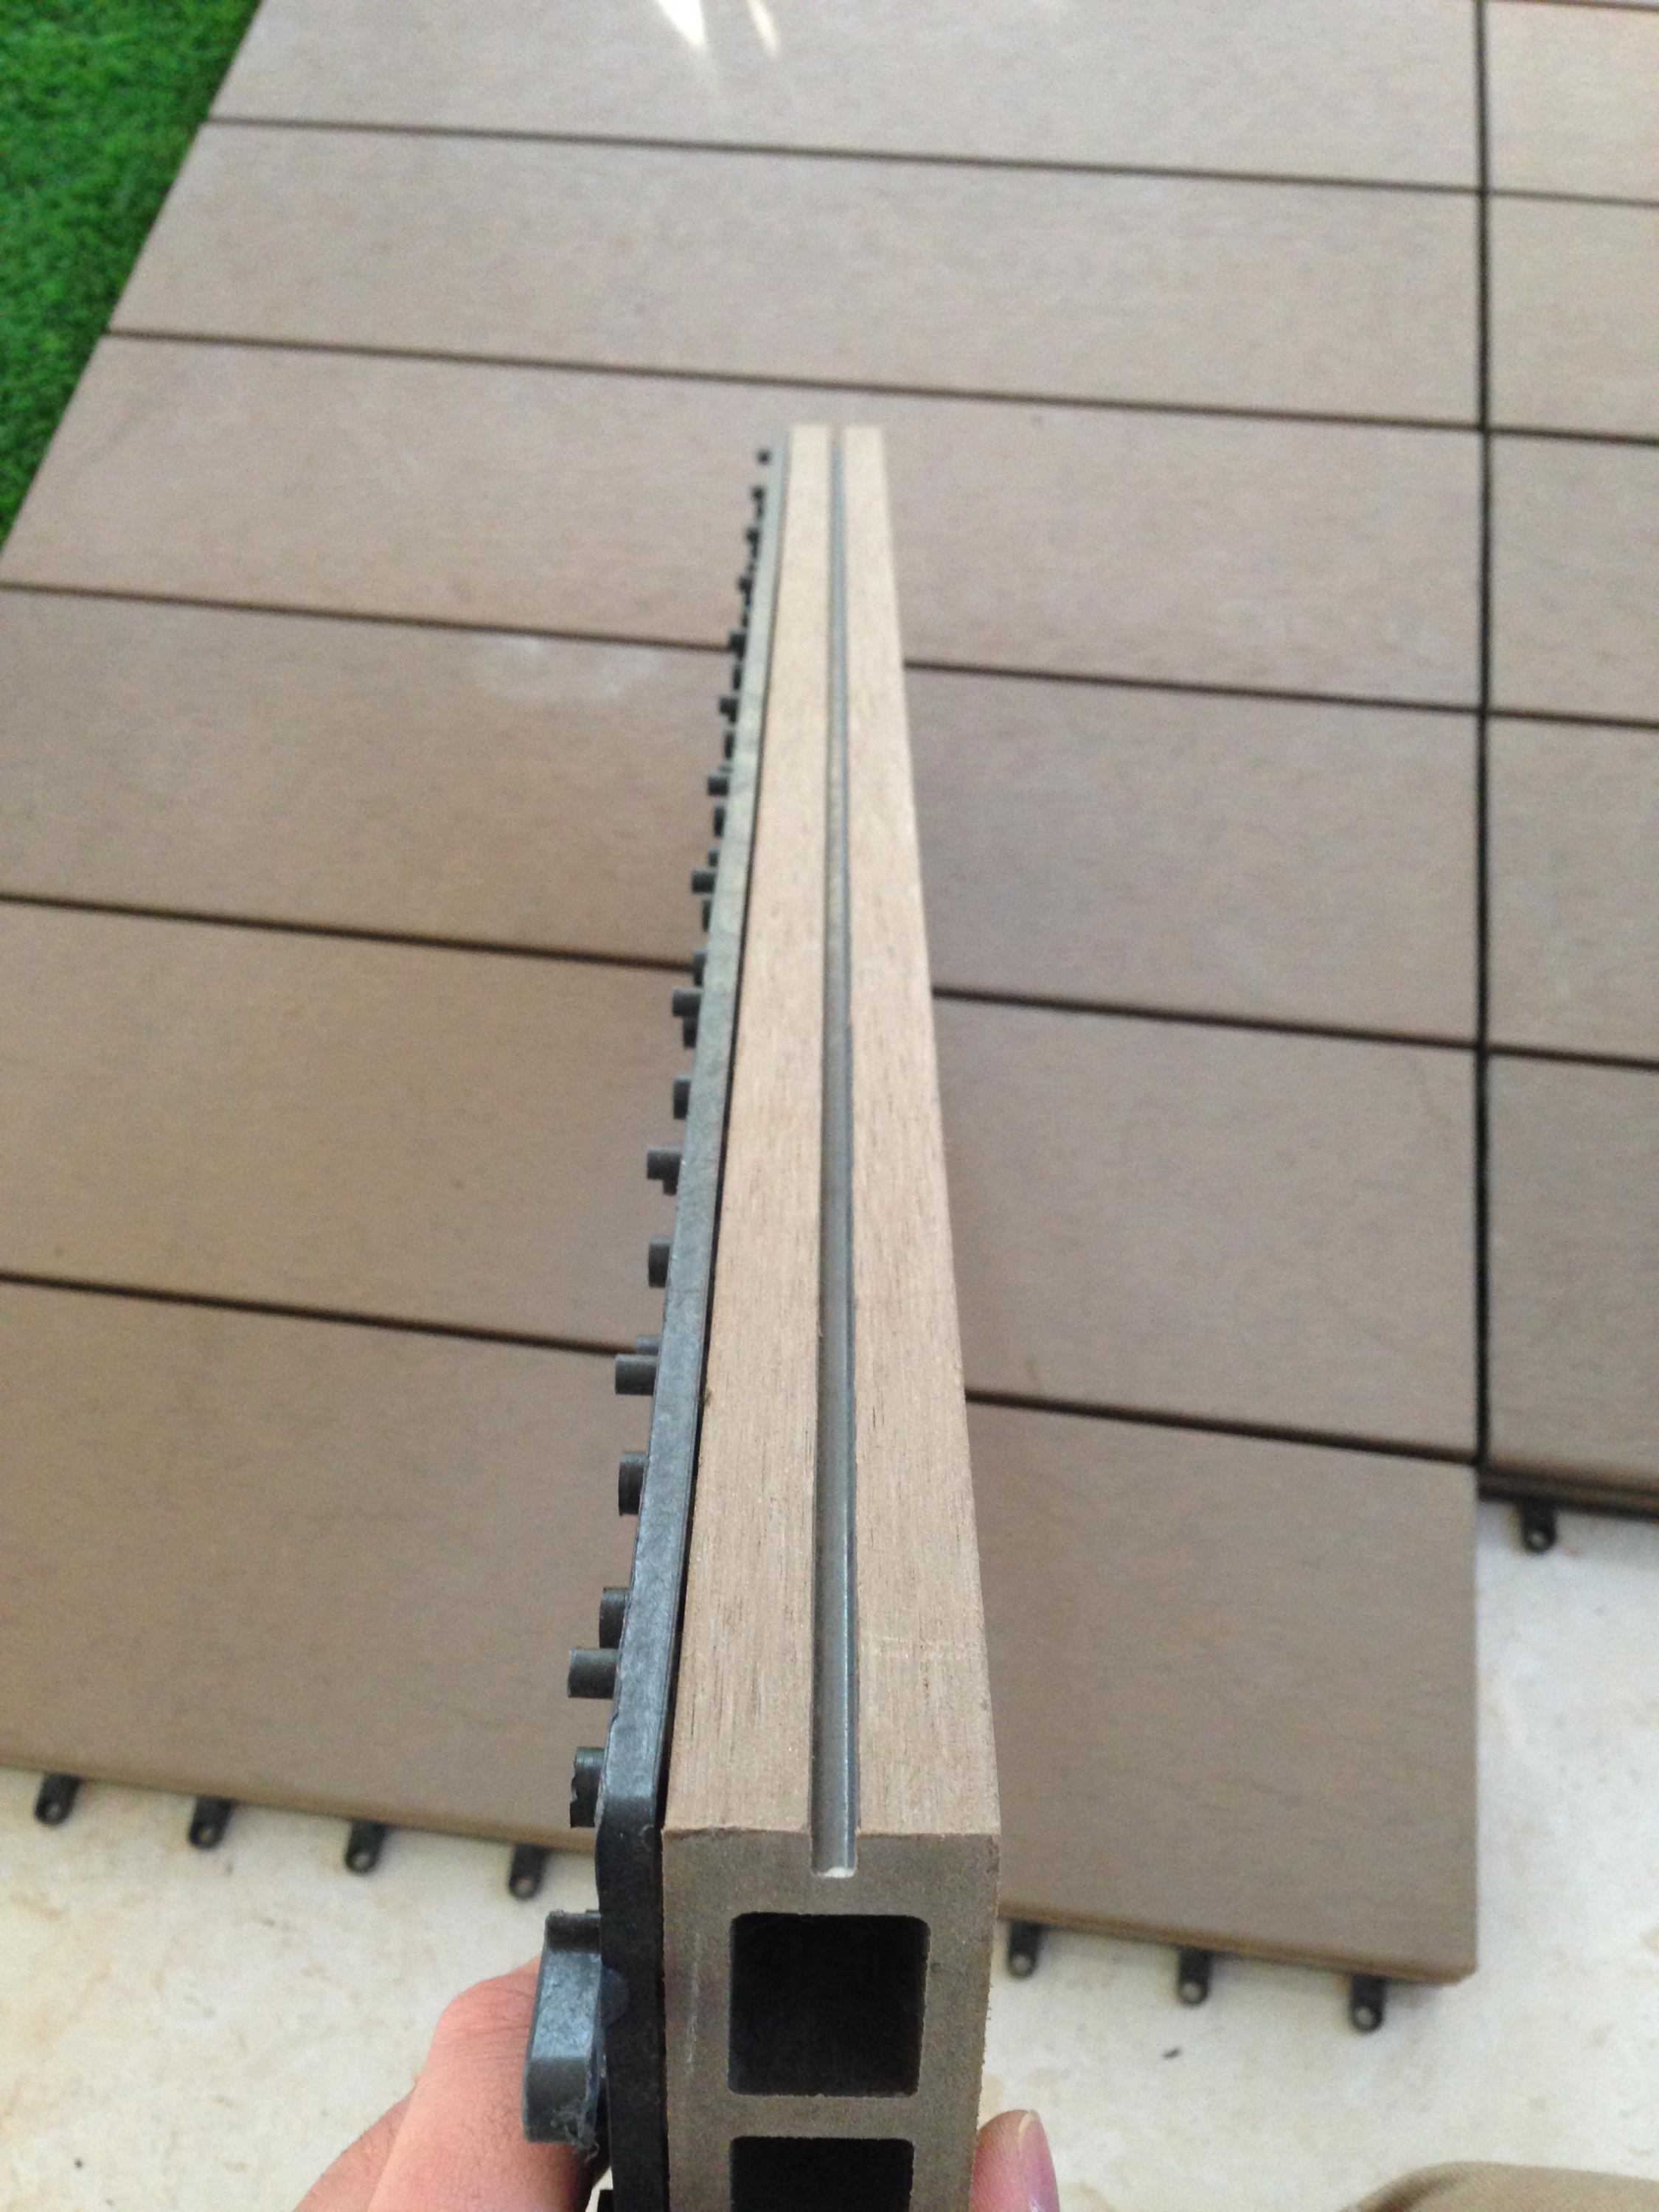 Garden Construction Terrace Cheap 15mm Wood Plastic Composite Decking Board Material DIY Deck Tile